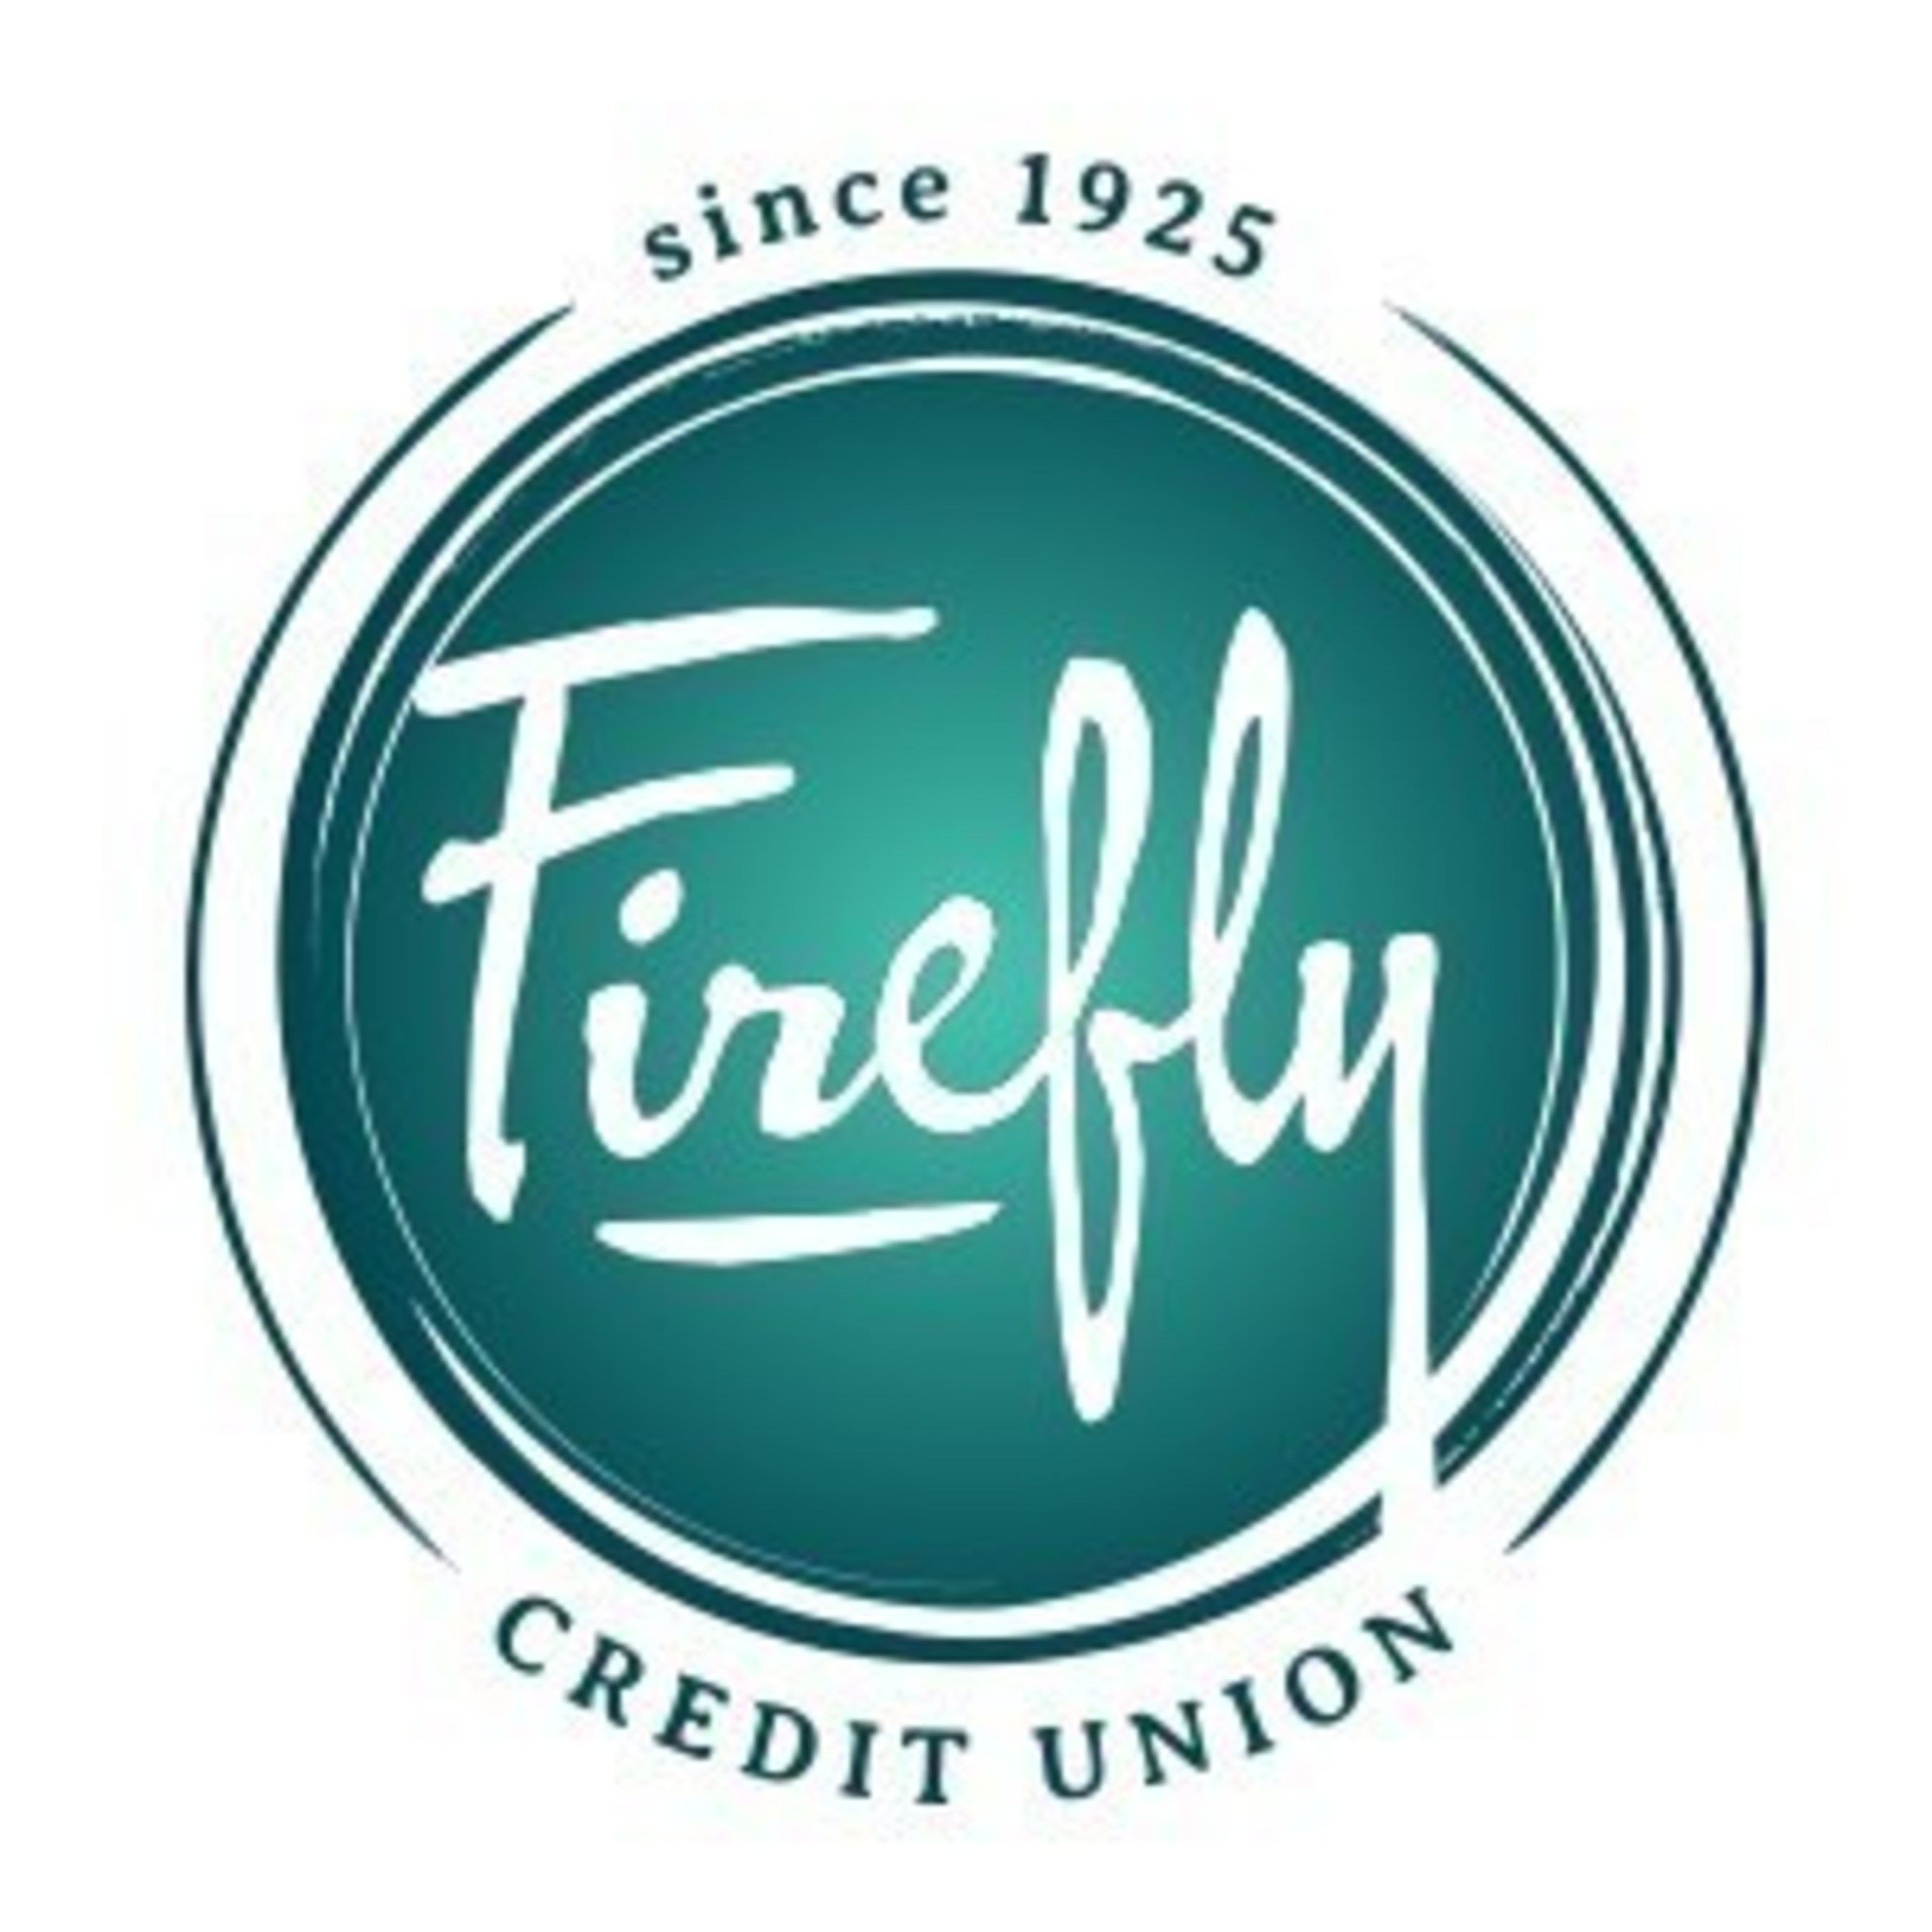 Partners Credit Union Branch: Firefly Credit Union Partners With CFM To Spark An